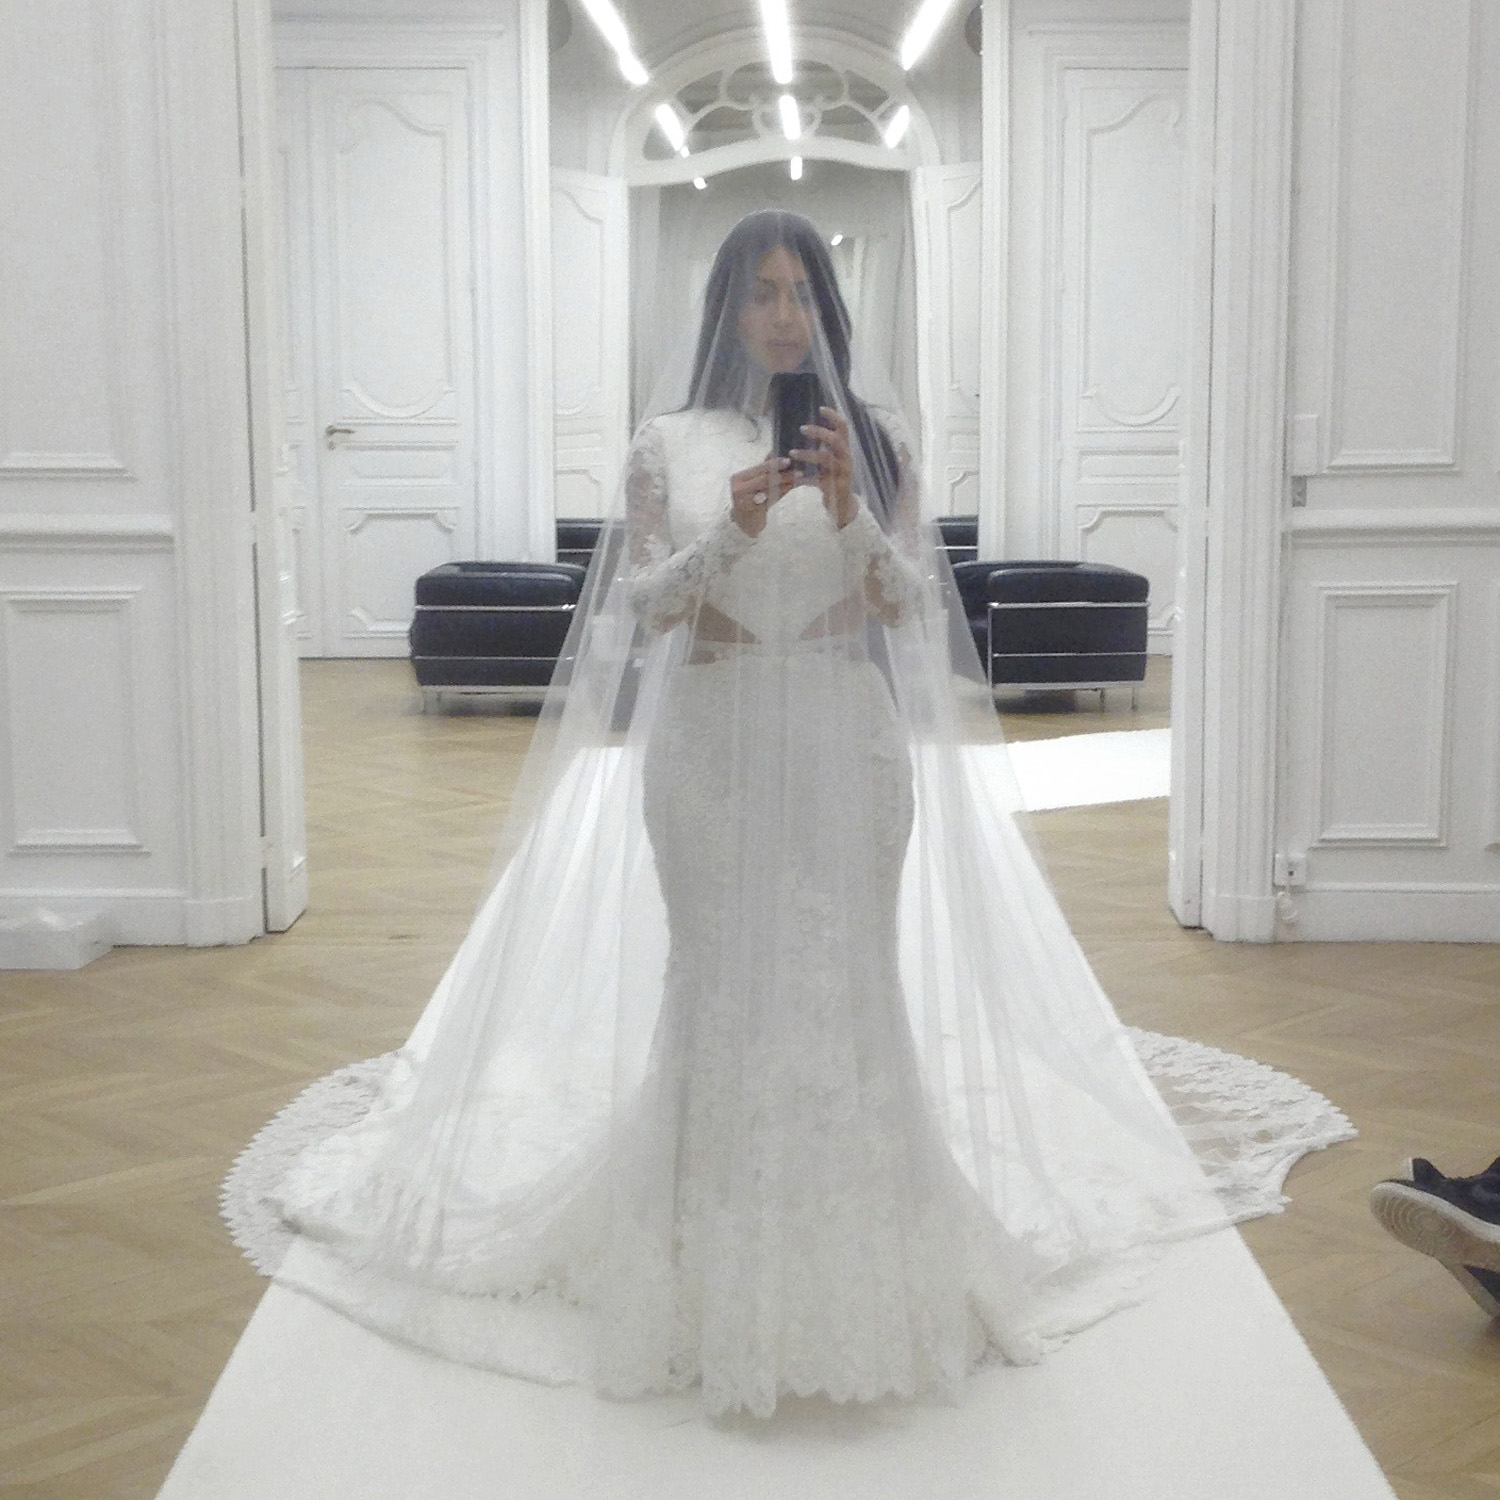 Kim K Wedding Gown: A Day In The Life Of Kim Kardashian